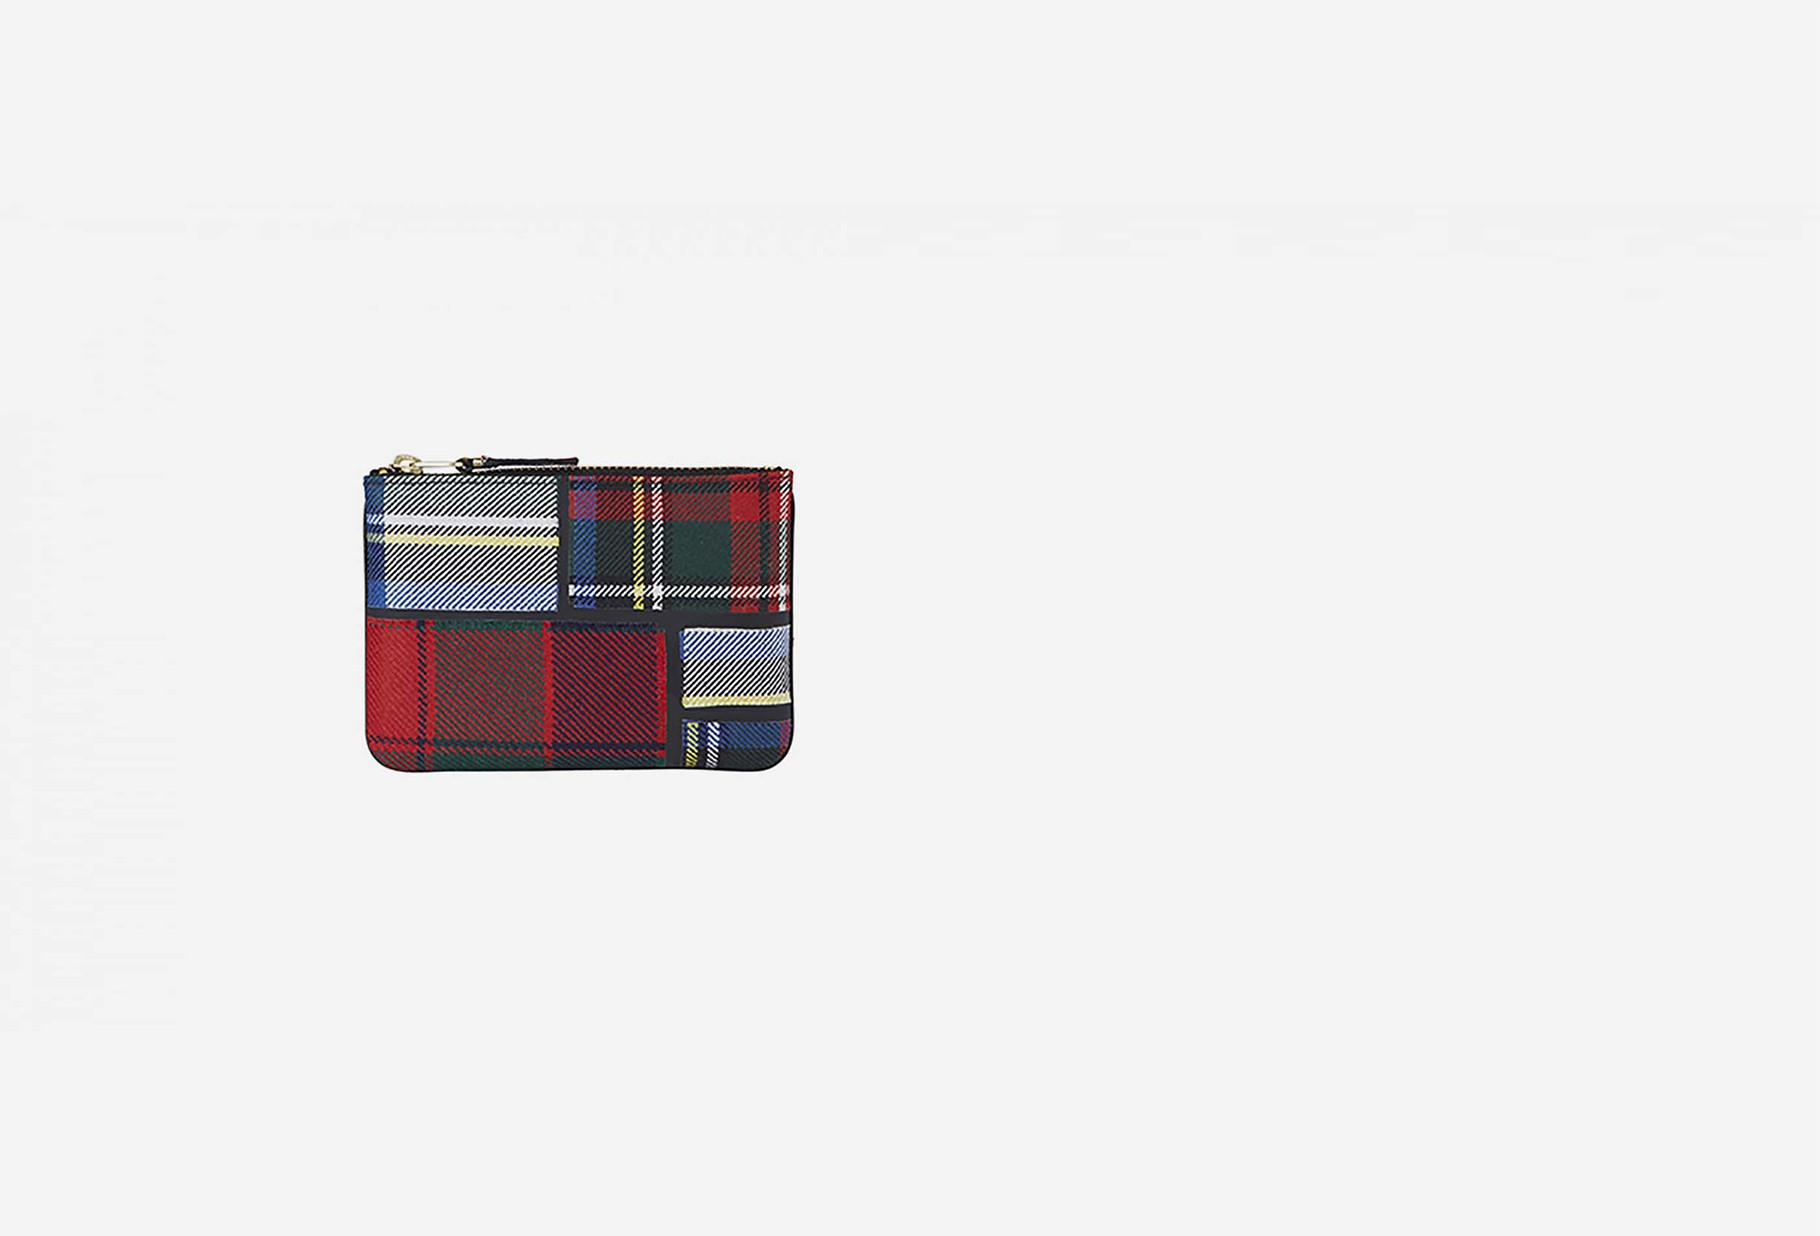 CDG WALLETS FOR WOMAN / Cdg tartan patchwork sa8100tp Red